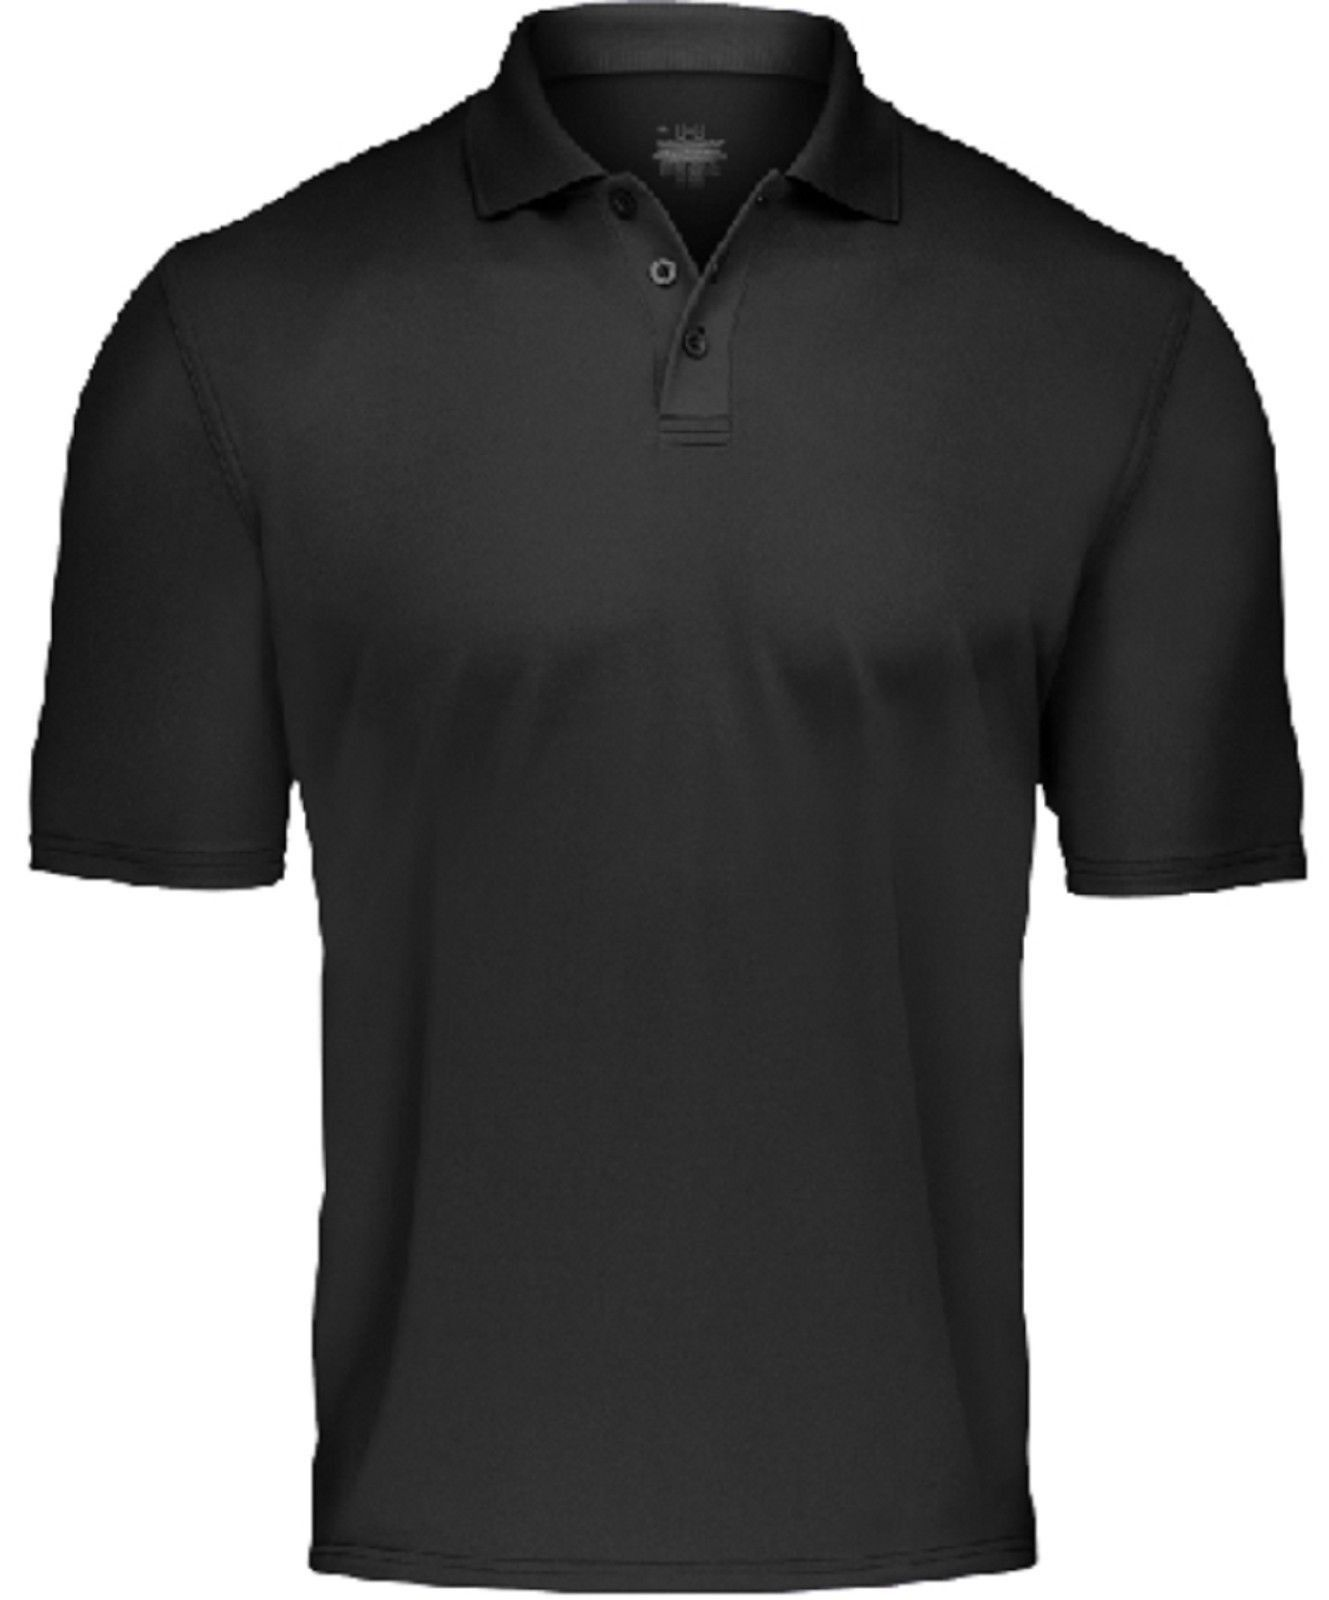 8a004e5c0 Under Armour Tactical Range Polo Shirt - Mens Loose Fit Collared Golf Shirt  Top